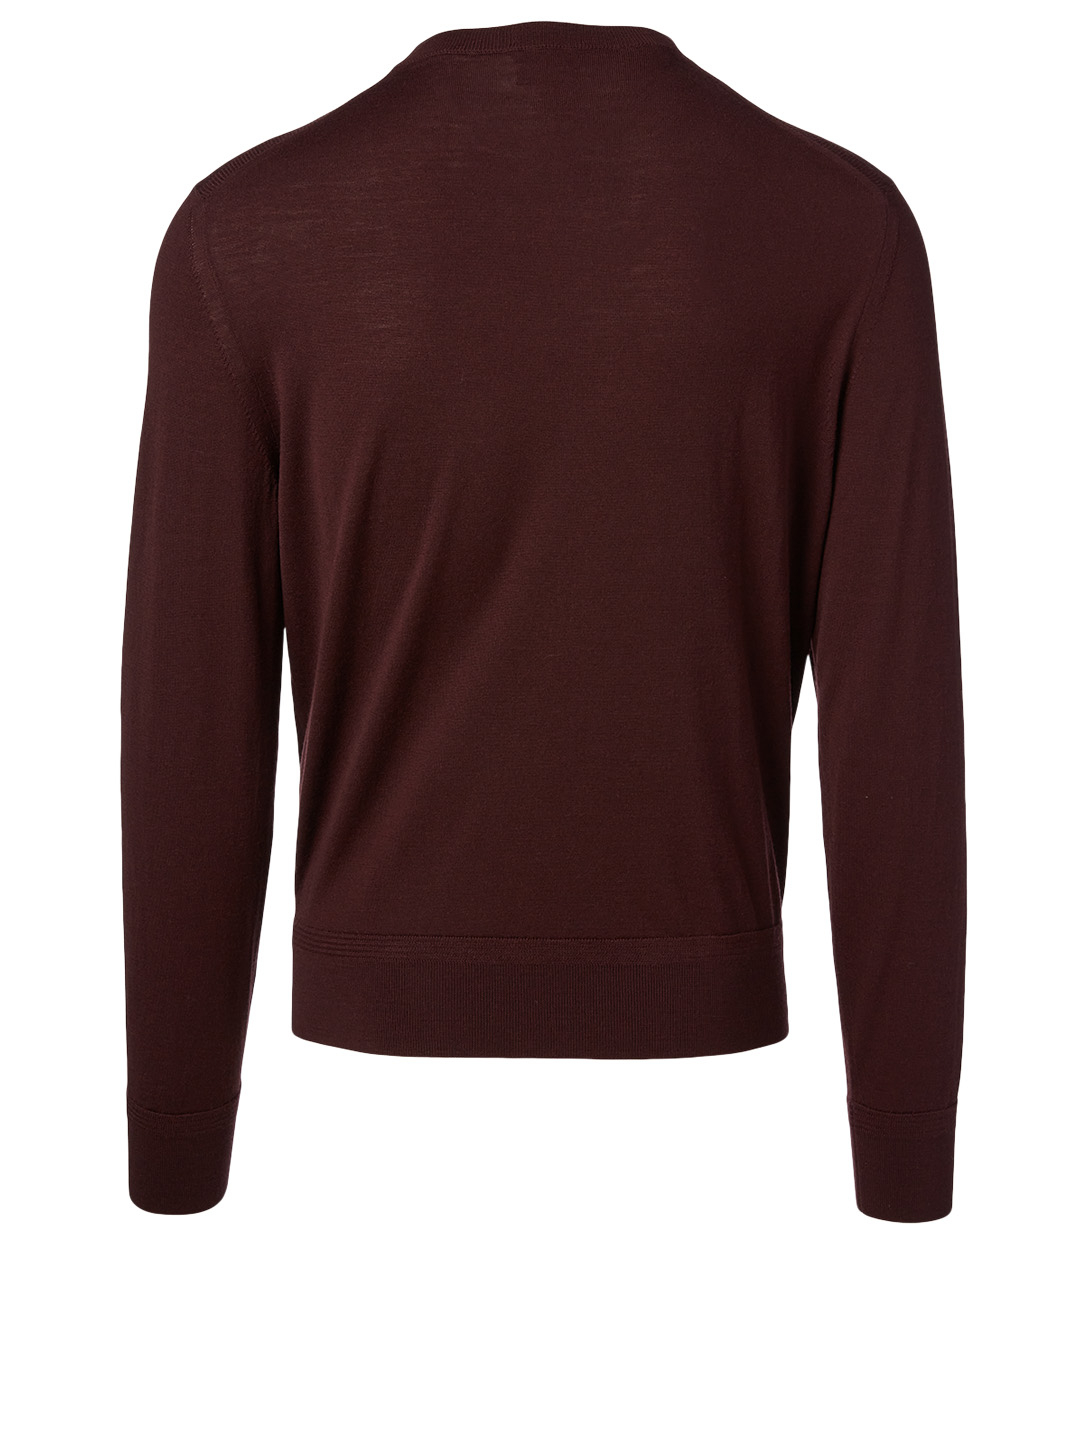 TOM FORD Wool Crewneck Sweater Men's Red